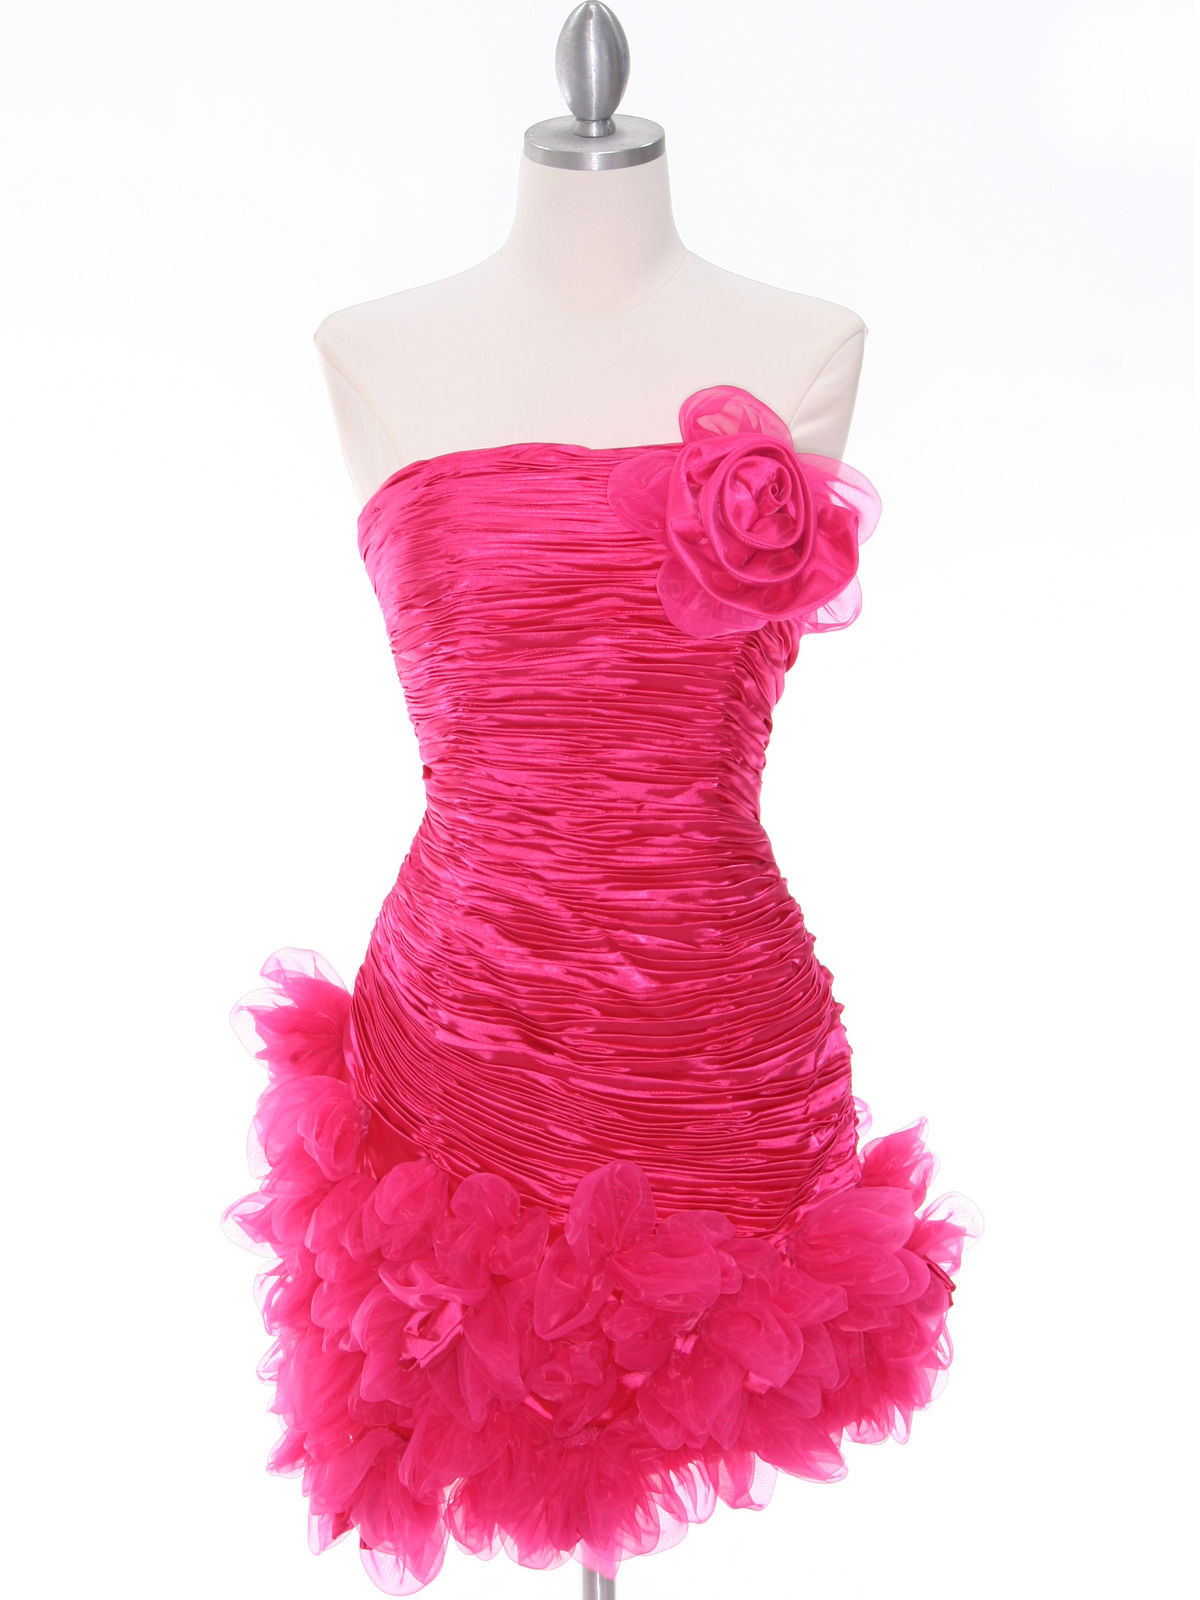 Hot Pink Strapless Ruched Cocktail Dress | Sung Boutique L.A.